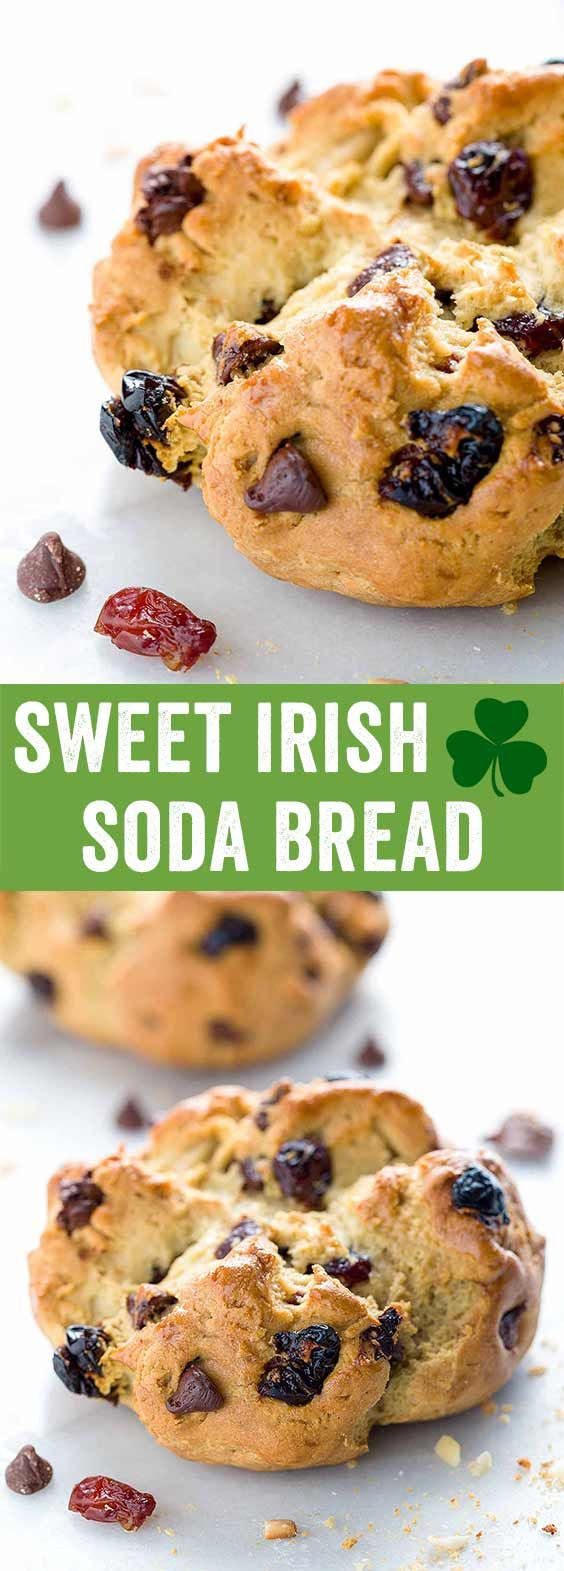 Sweet Irish Soda Bread with Cherries - This recipe is a twist on the traditional loaf and loaded with dried cherries, dark chocolate, and slivered almonds. via @foodiegavin